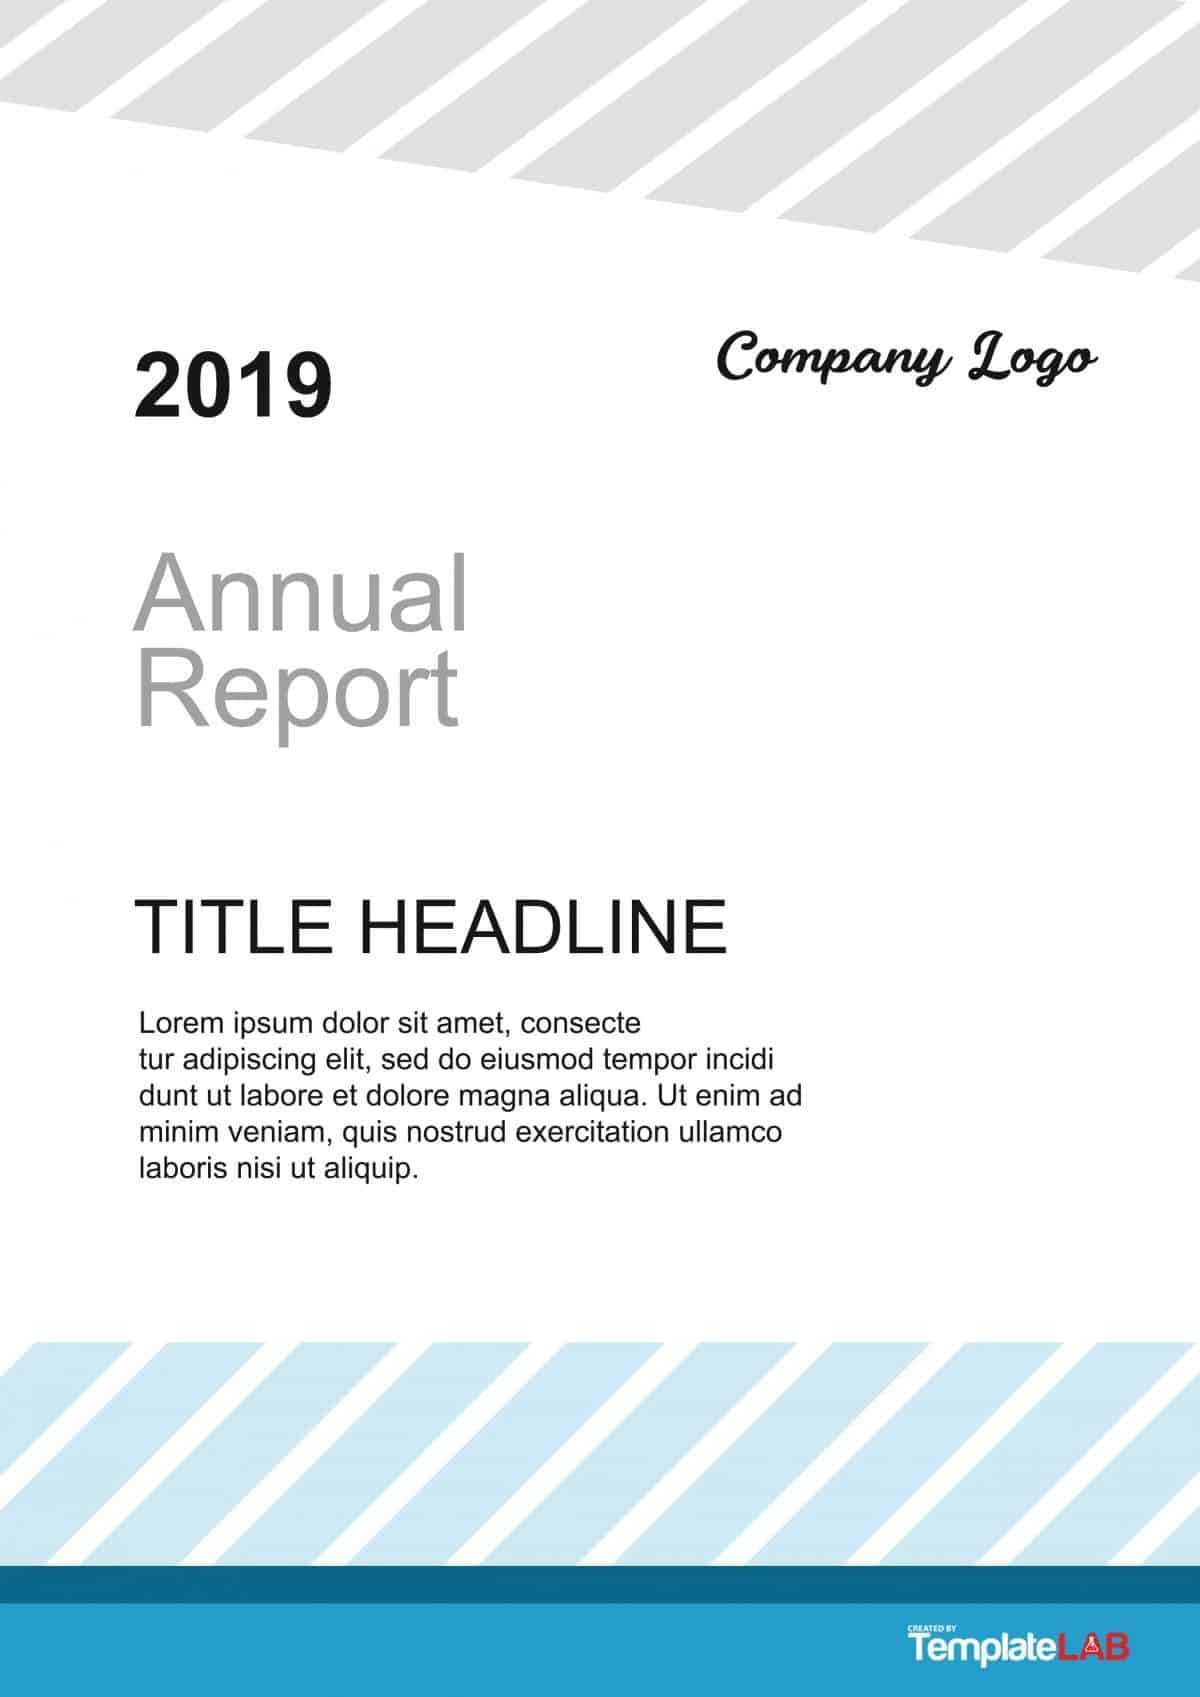 Technical Report Cover Page Template - Business Template Ideas Inside Report Cover Page Template Word